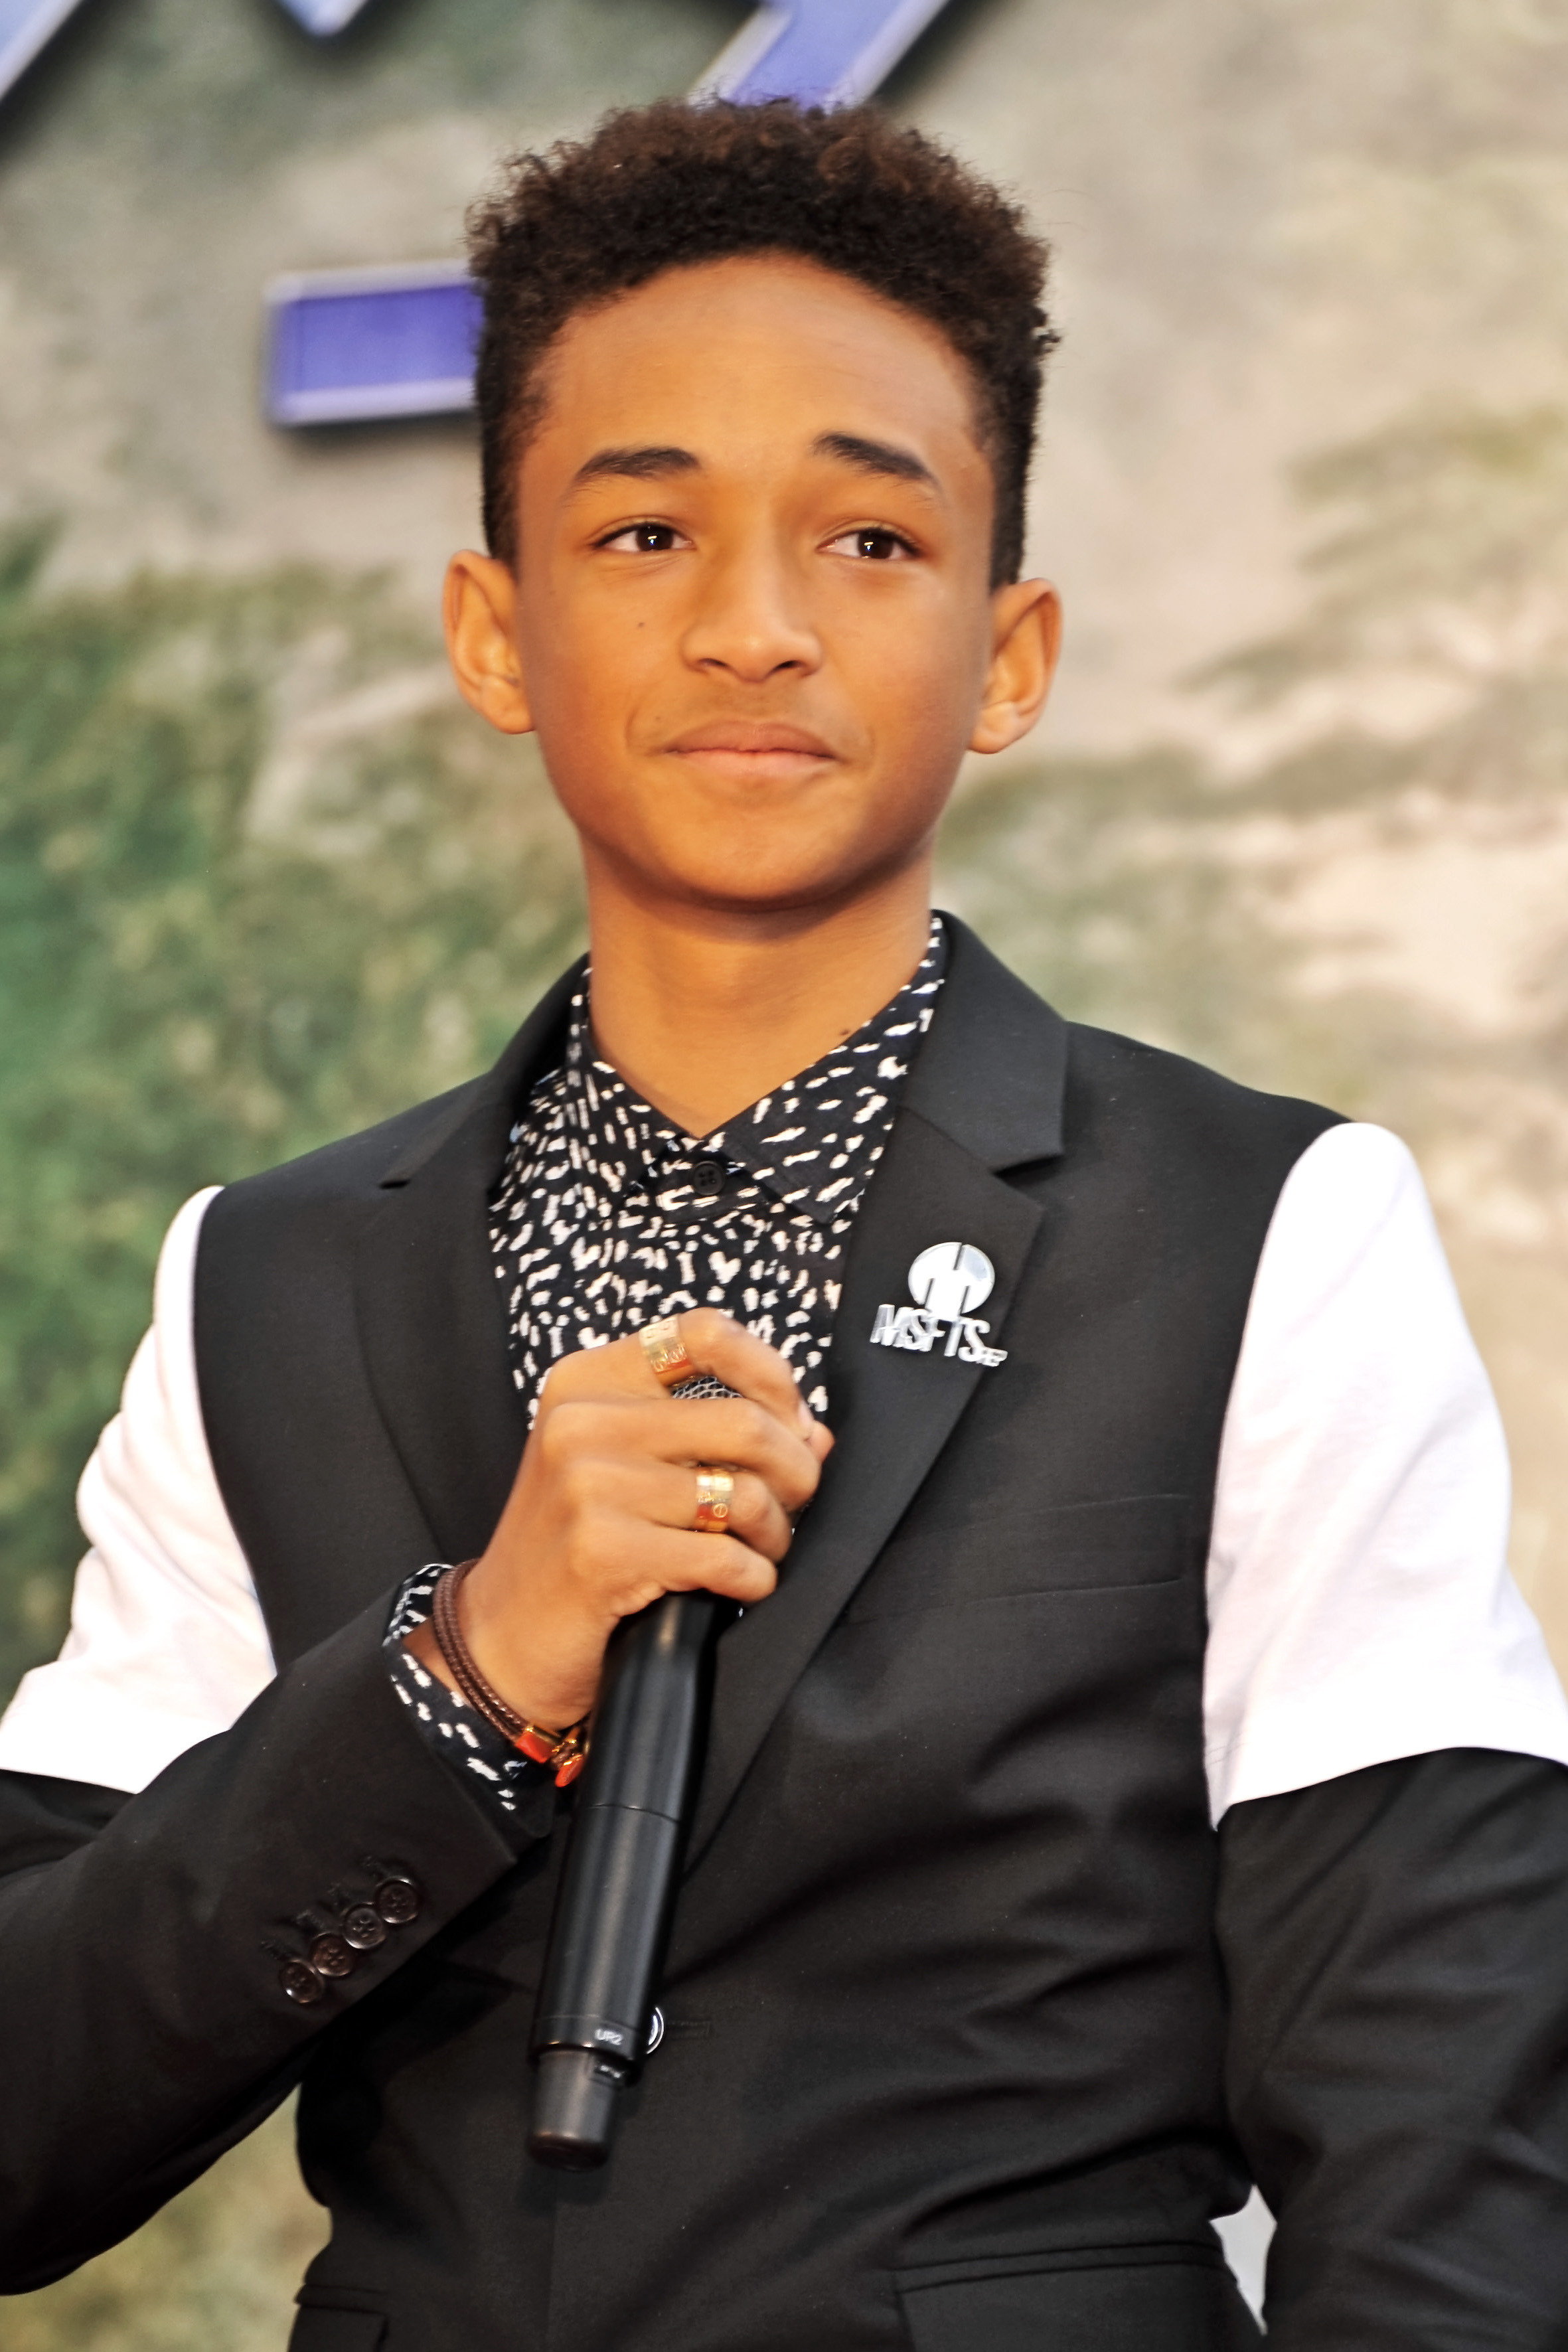 Hbo s new pilot brothers starring jaden smith casting for Jaden smith 2015